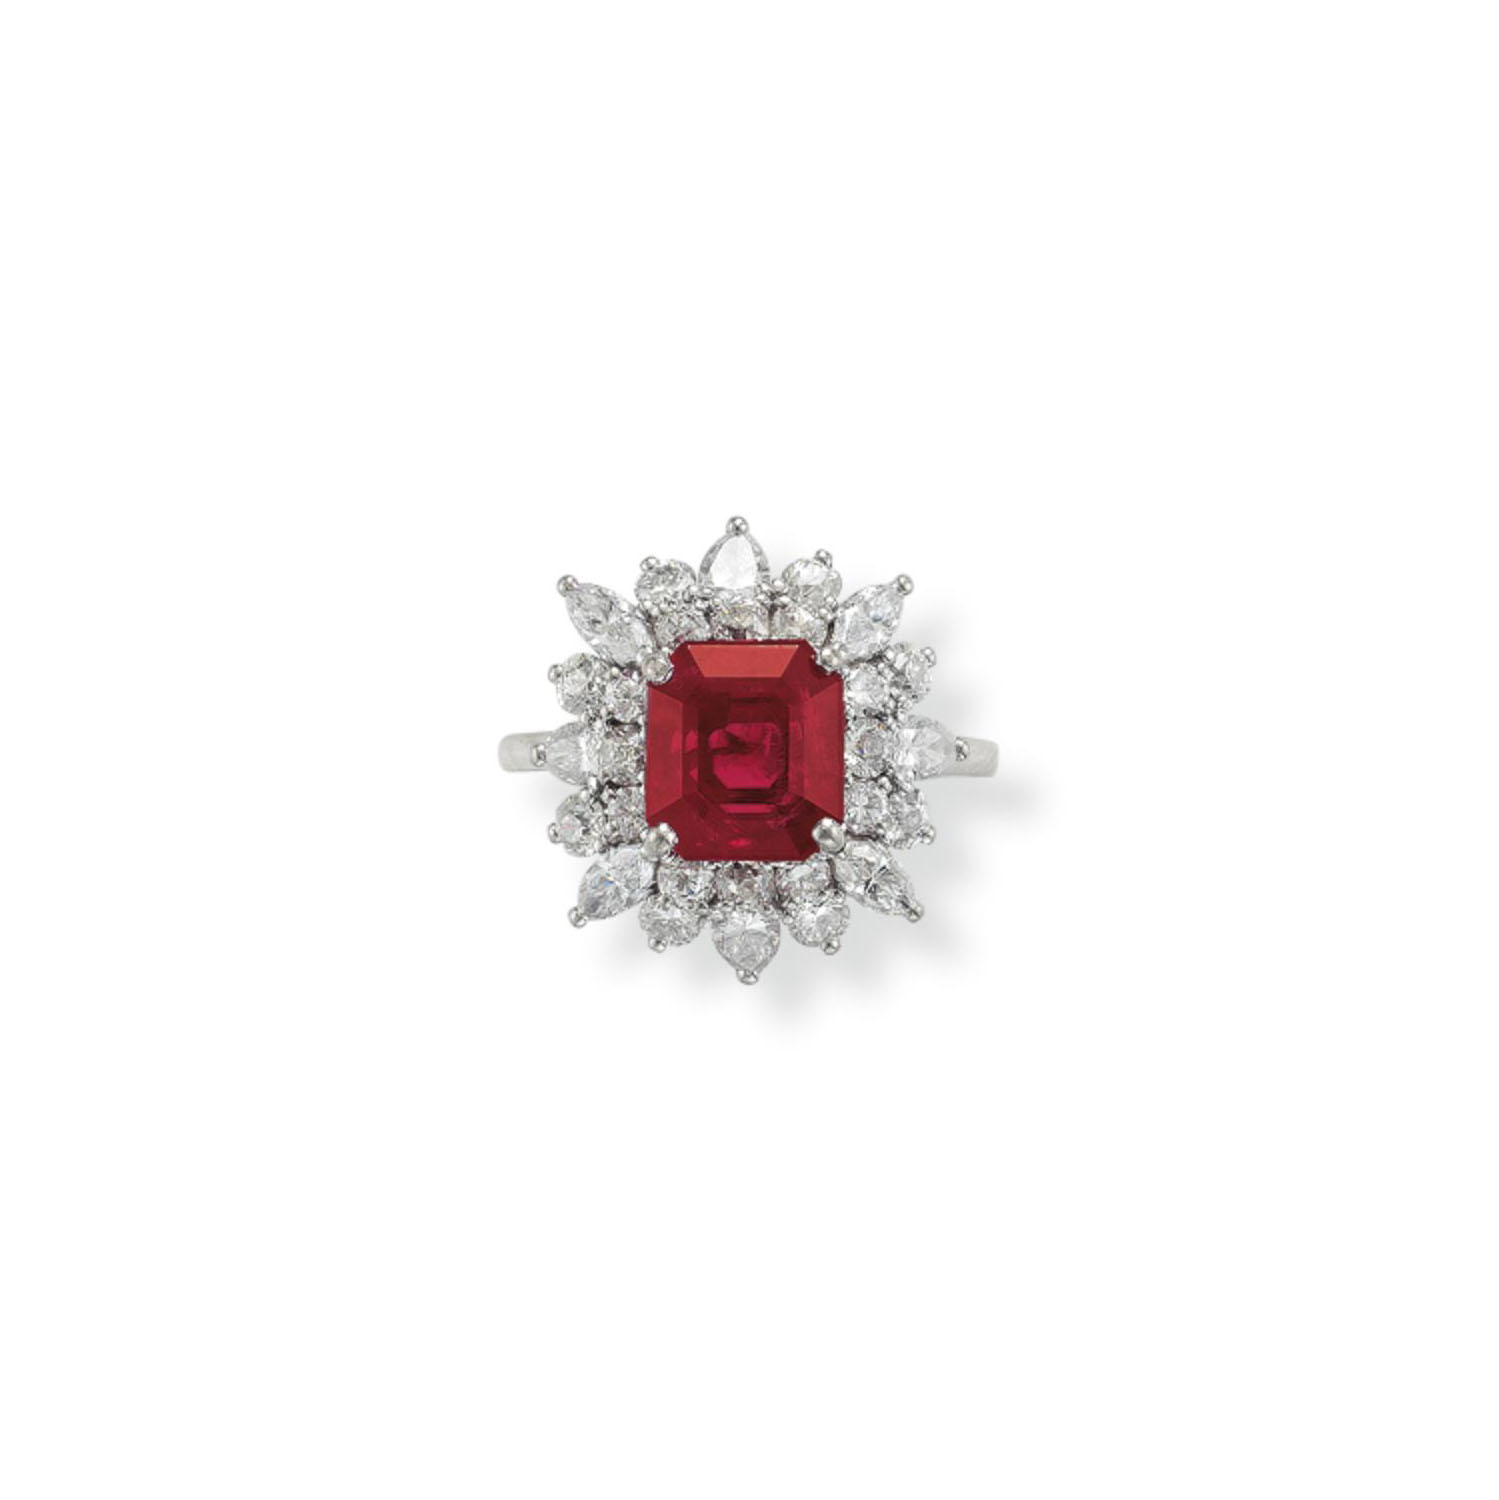 A RUBY AND DIAMOND RING, BY HENRY BIRKS